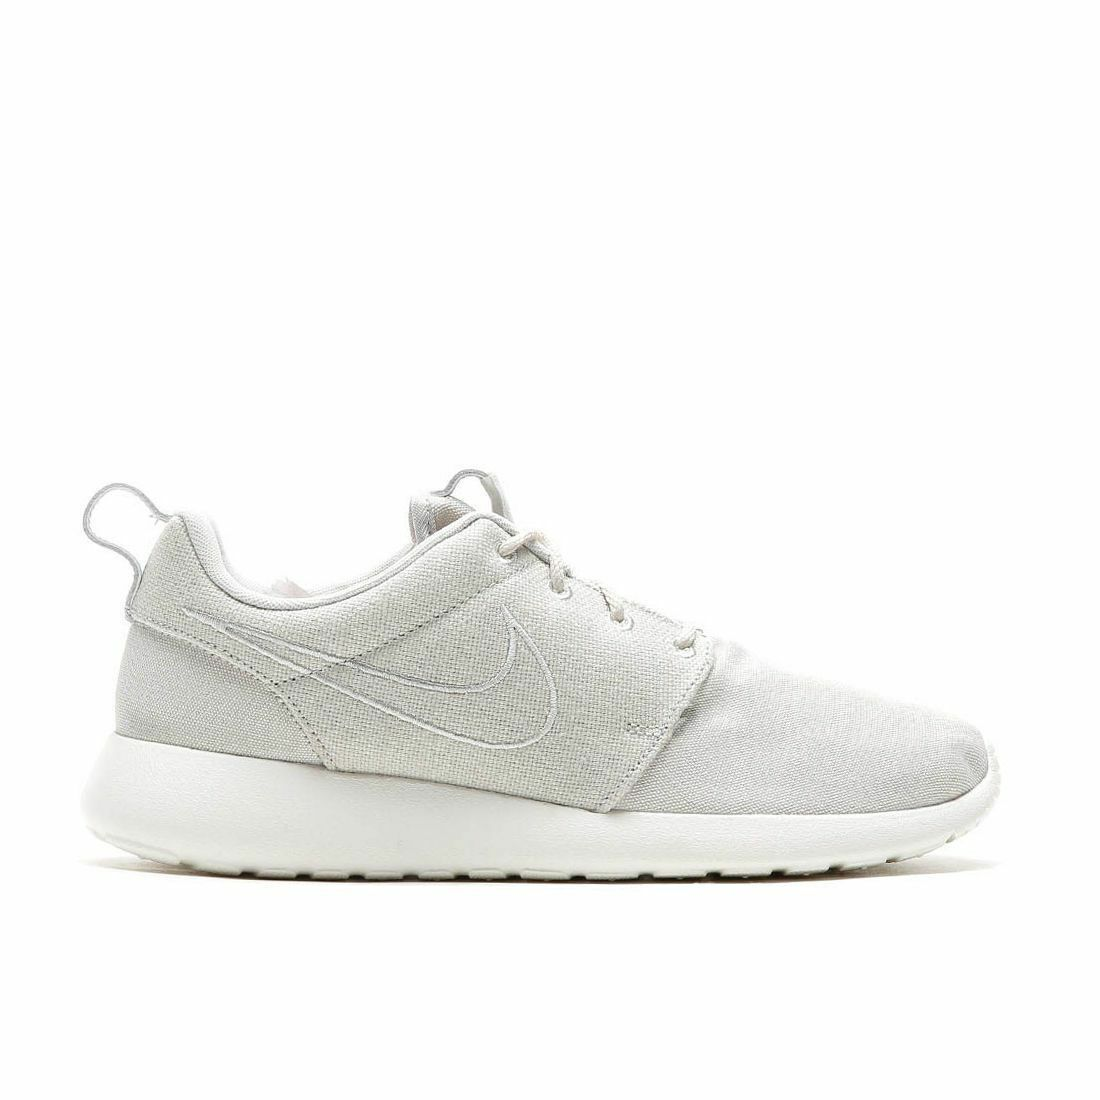 Nike Roshe One Premium Men's Shoes Light Bone/Light Bone Sail 525234 013 Size 8 Light Bone/Light Bone-Sail